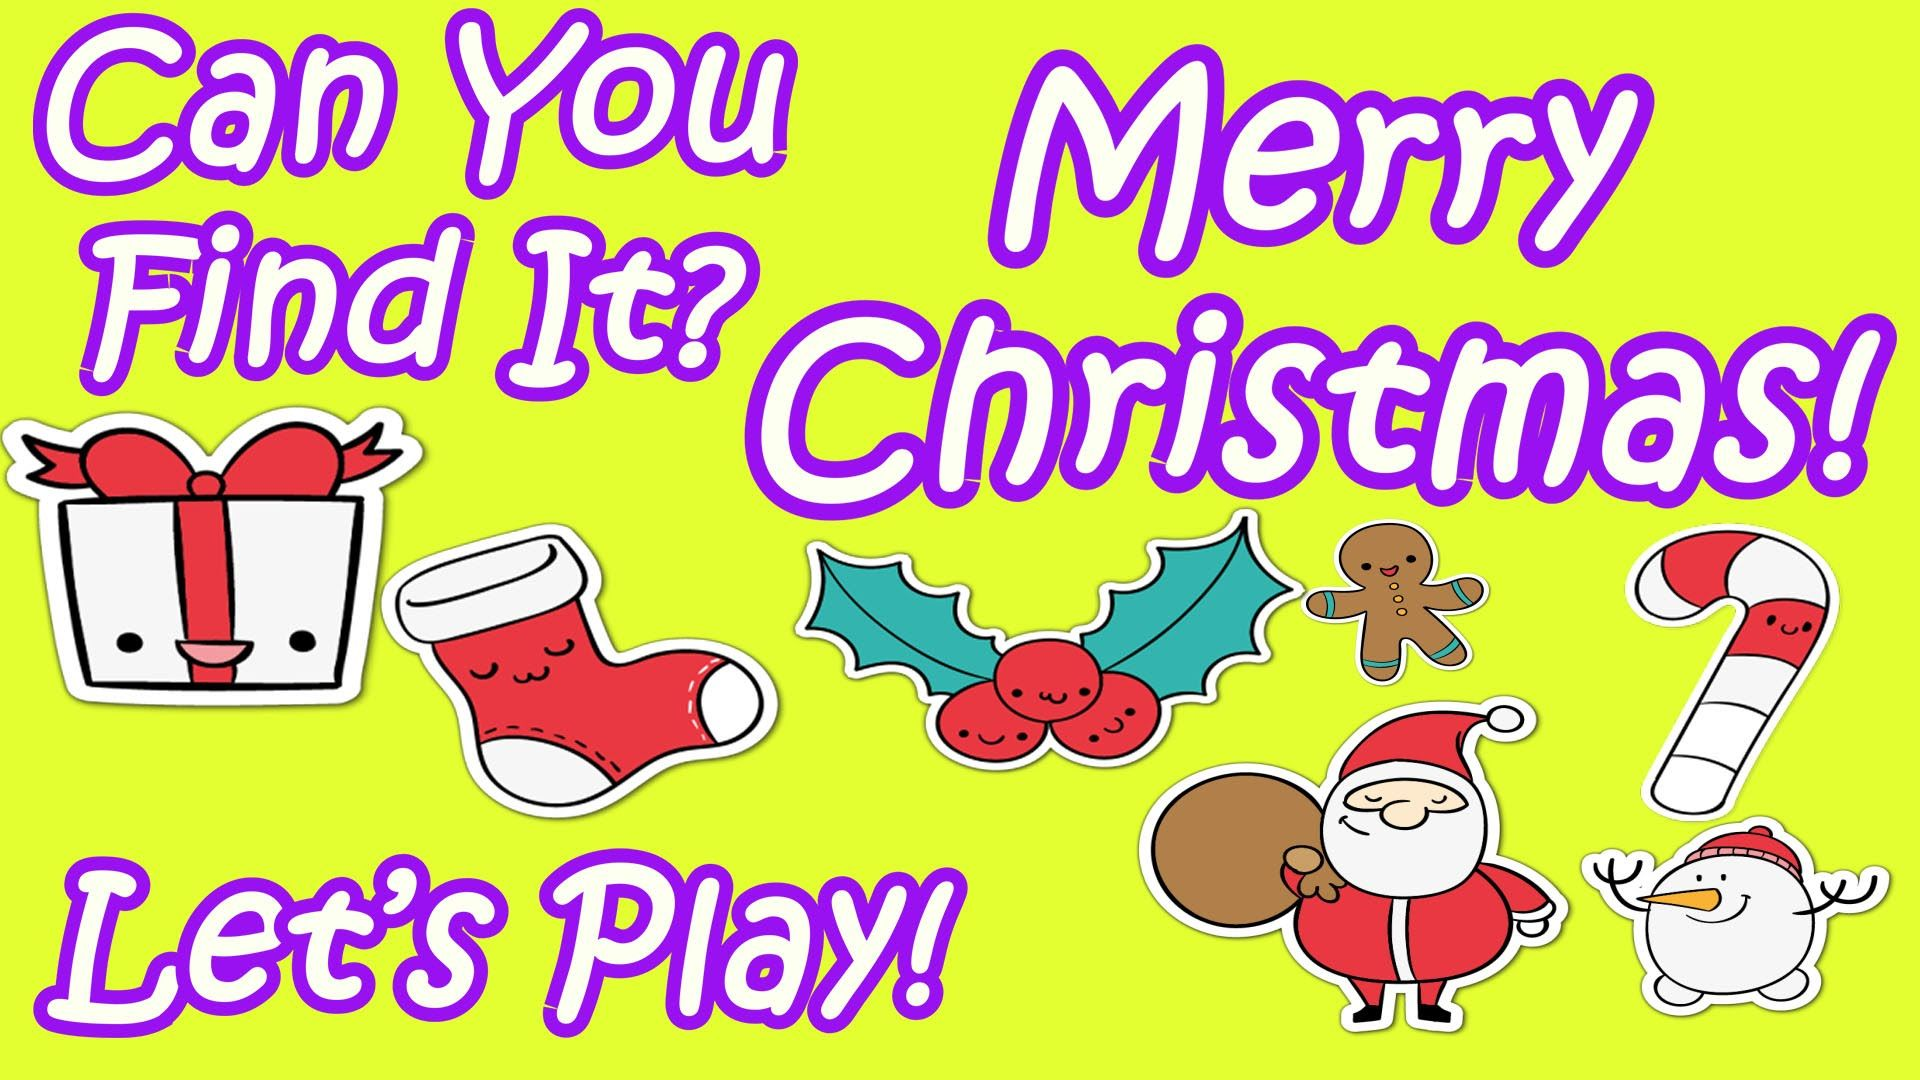 Kids Learn About Christmas Let S Play Can You Find It Christmas Edition Kids Learning Can You Find It Lets Play